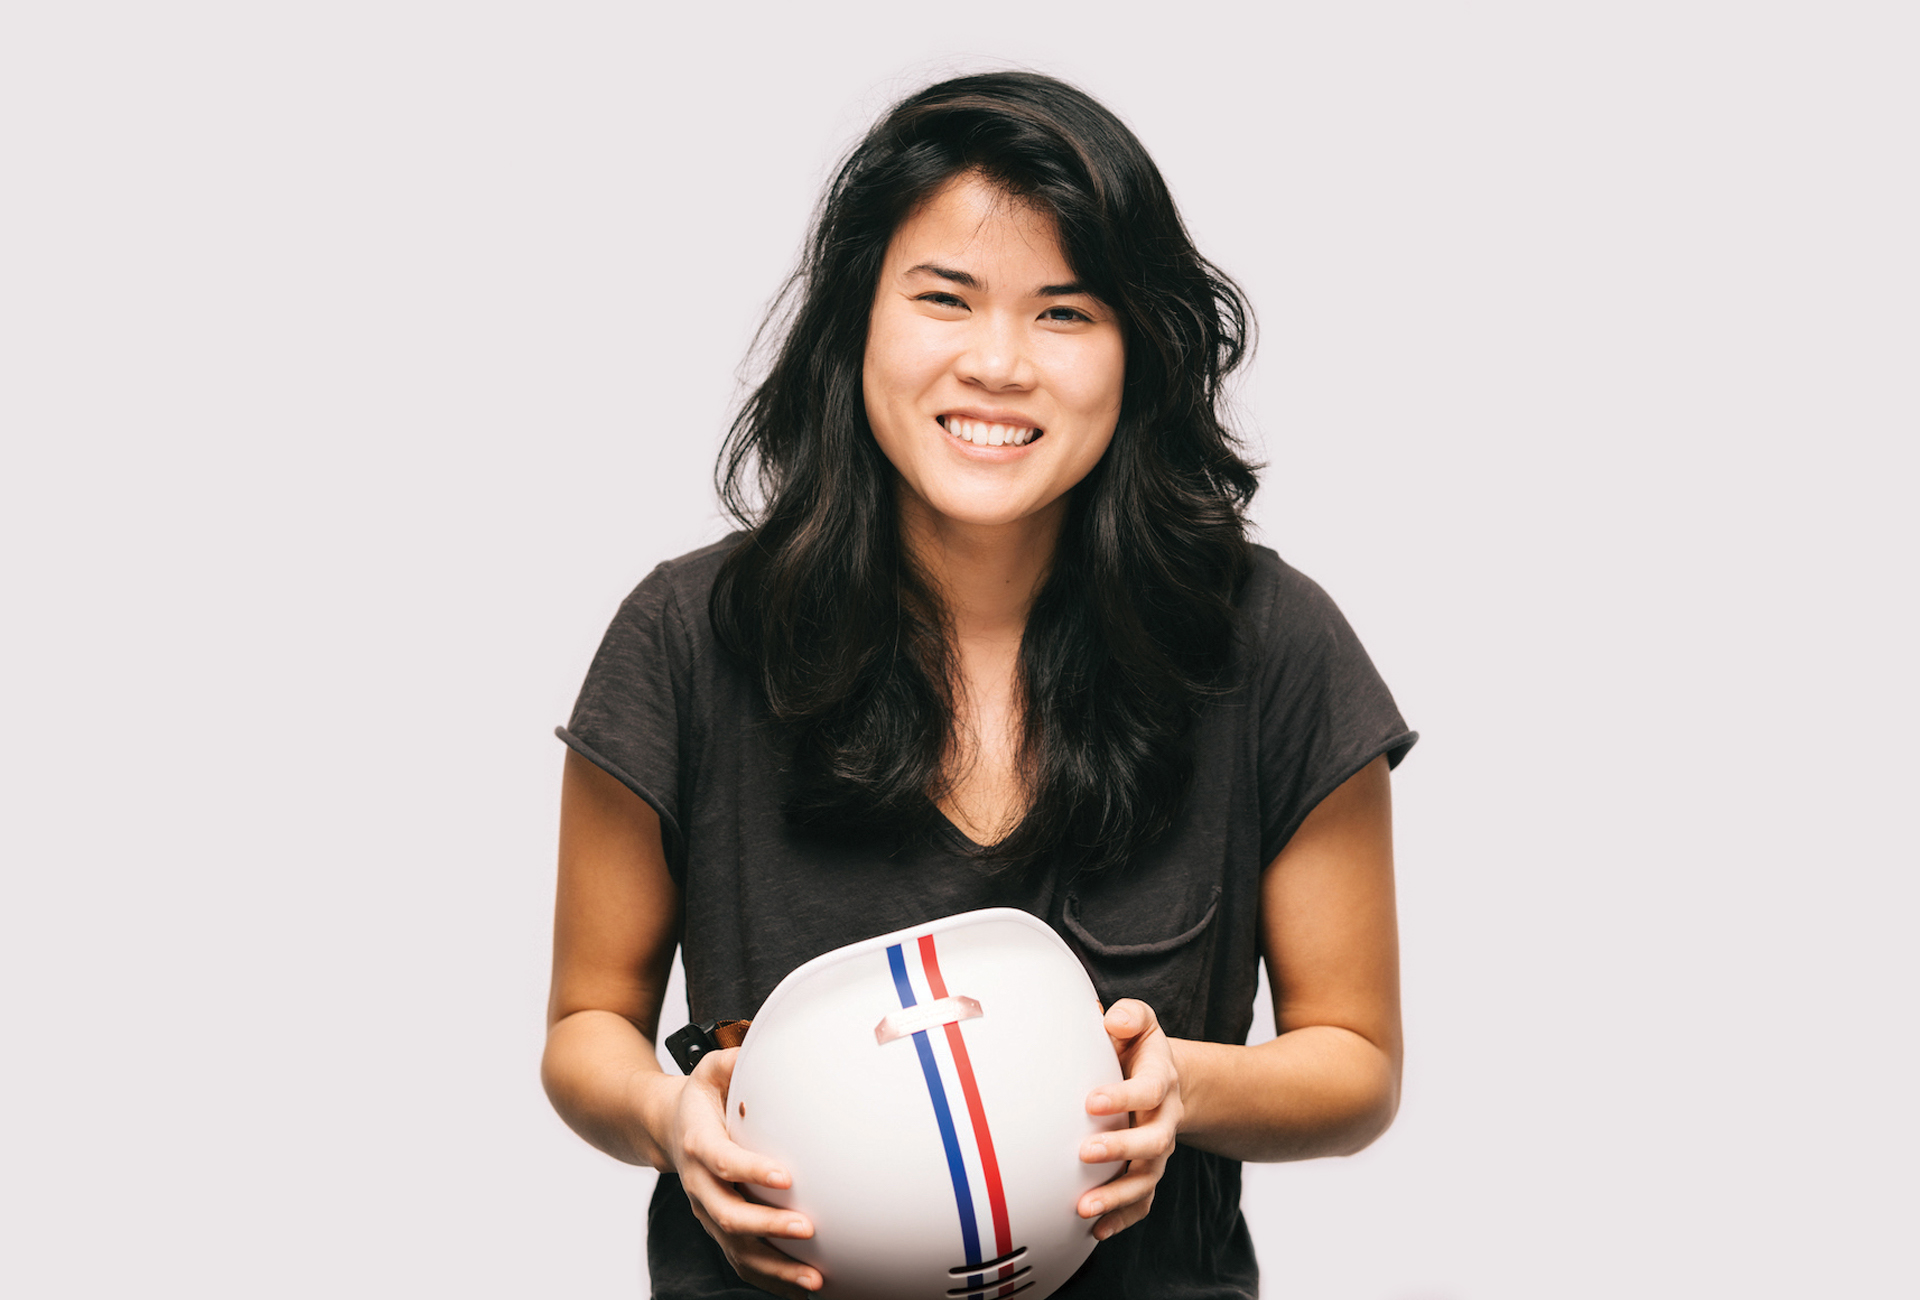 Portrait of Gloria Hwang holding a Thousand stripped helmet.